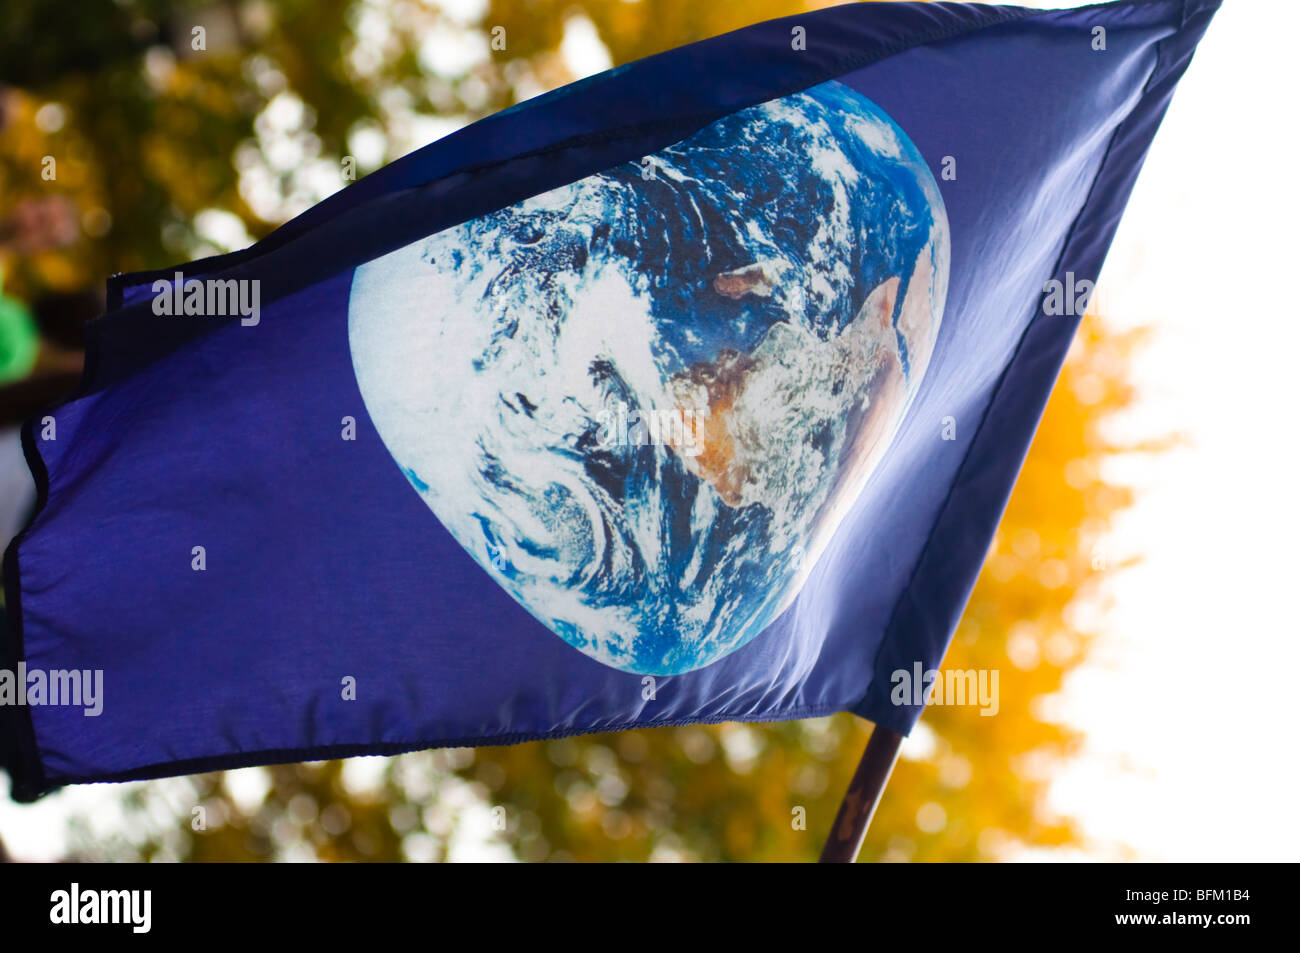 A blue flag with an image of plant earth flies over an environmental protest event. Stock Photo